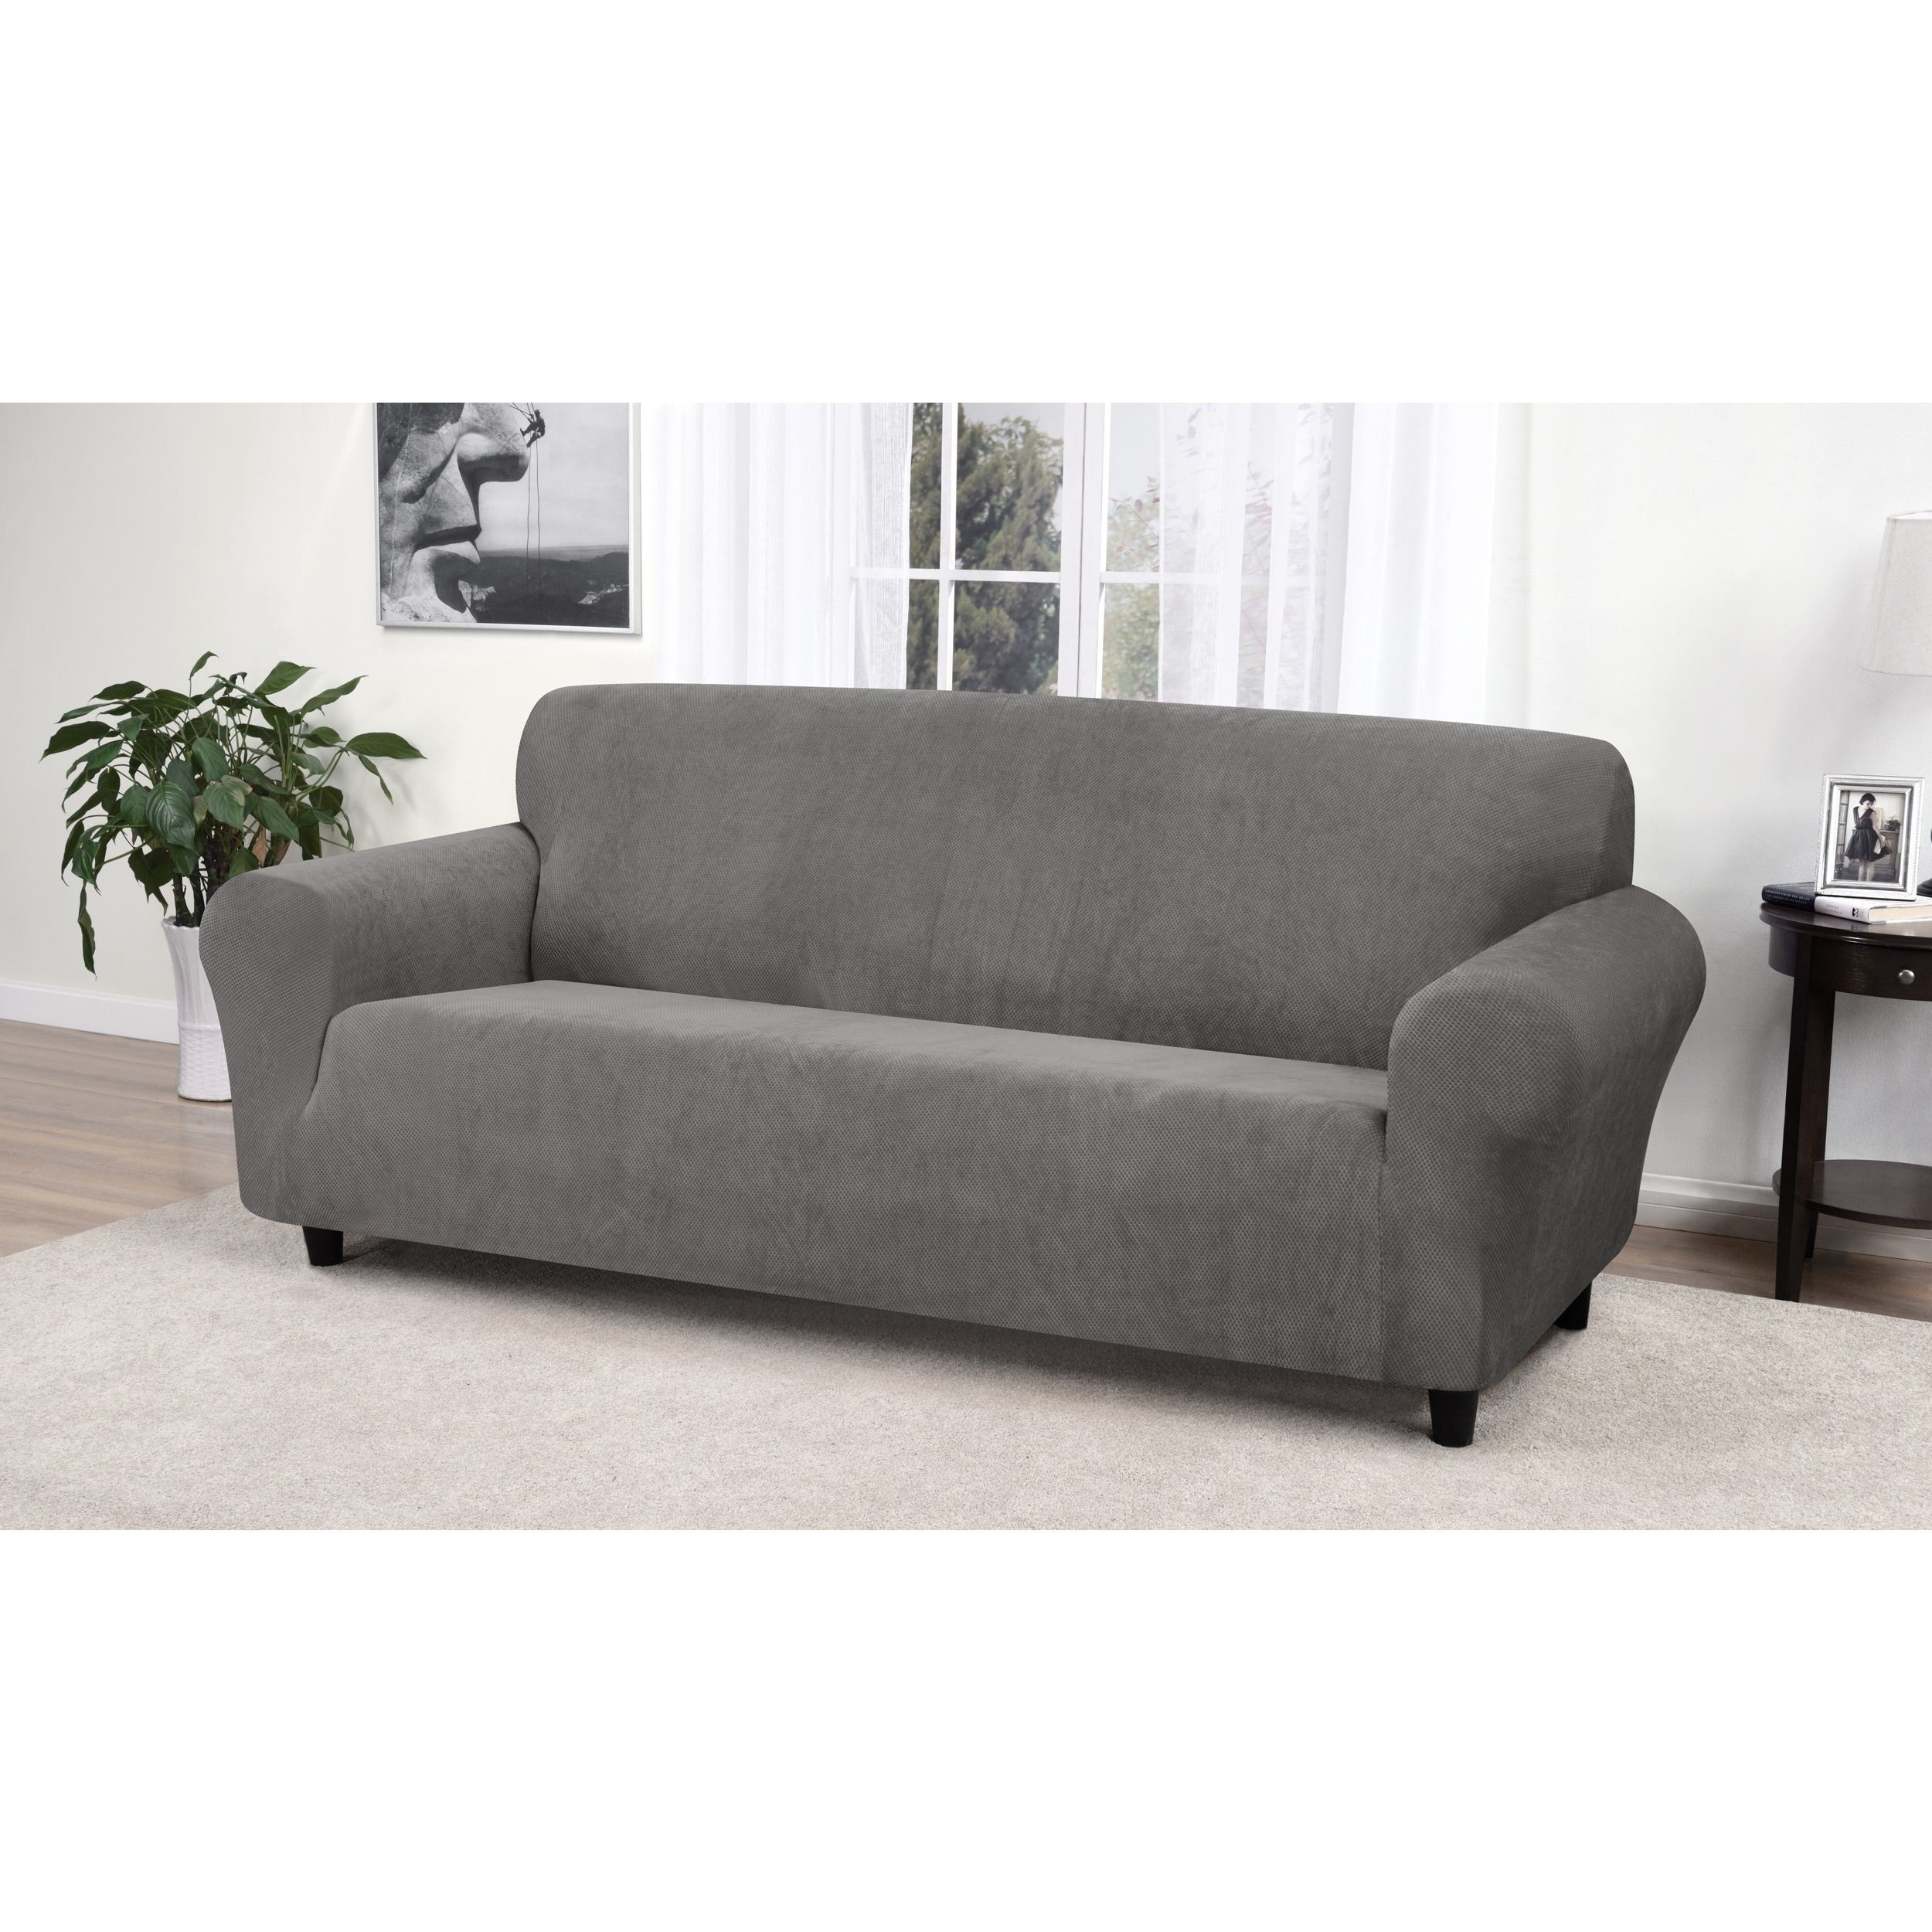 sofa free shipping europe costco sectional outdoor slipcover home the honoroak